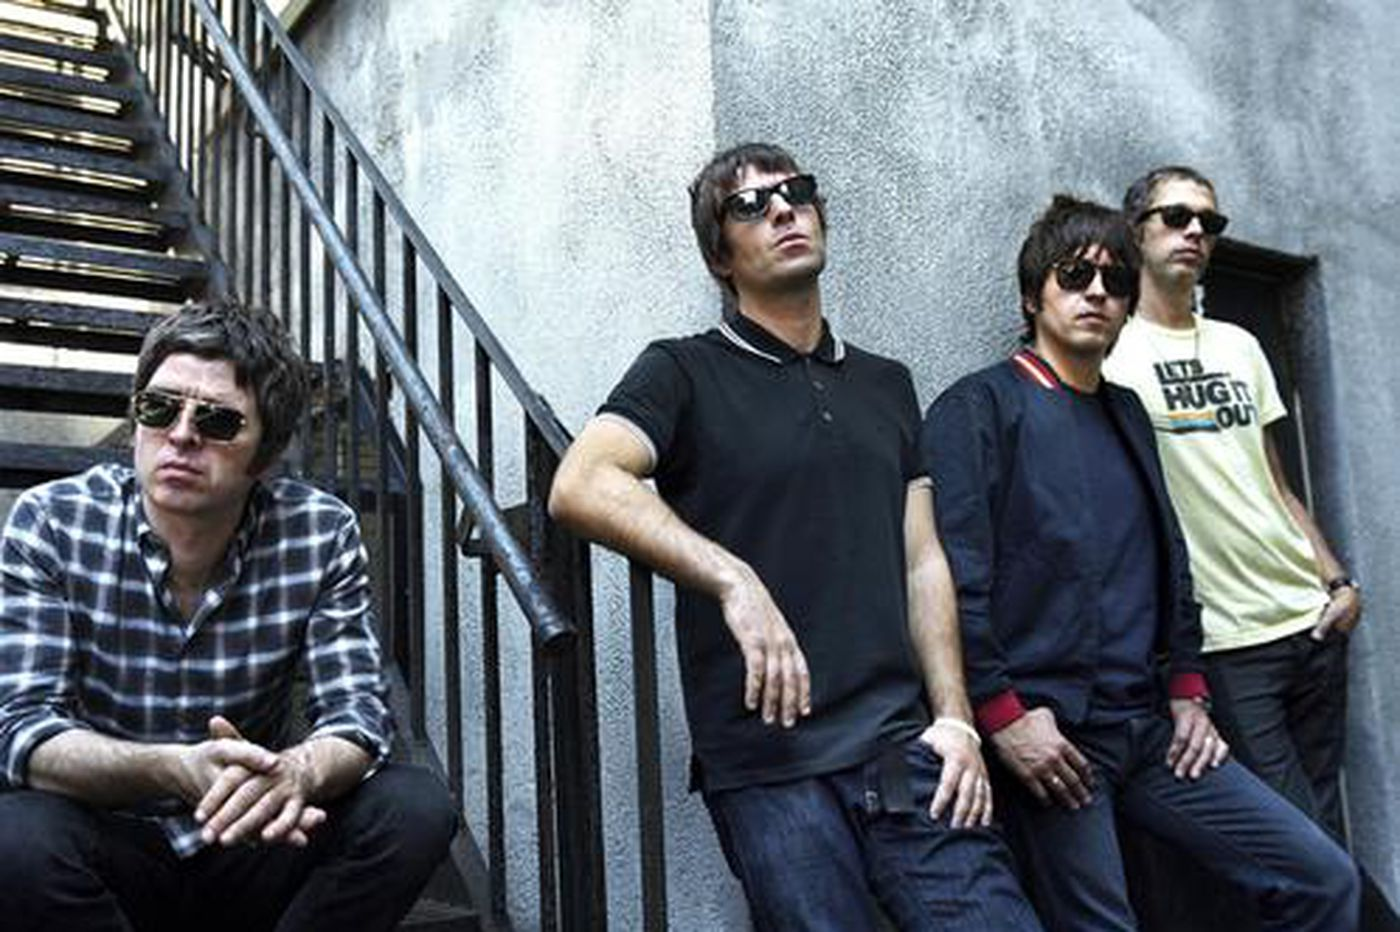 Oasis salutes its musical influences